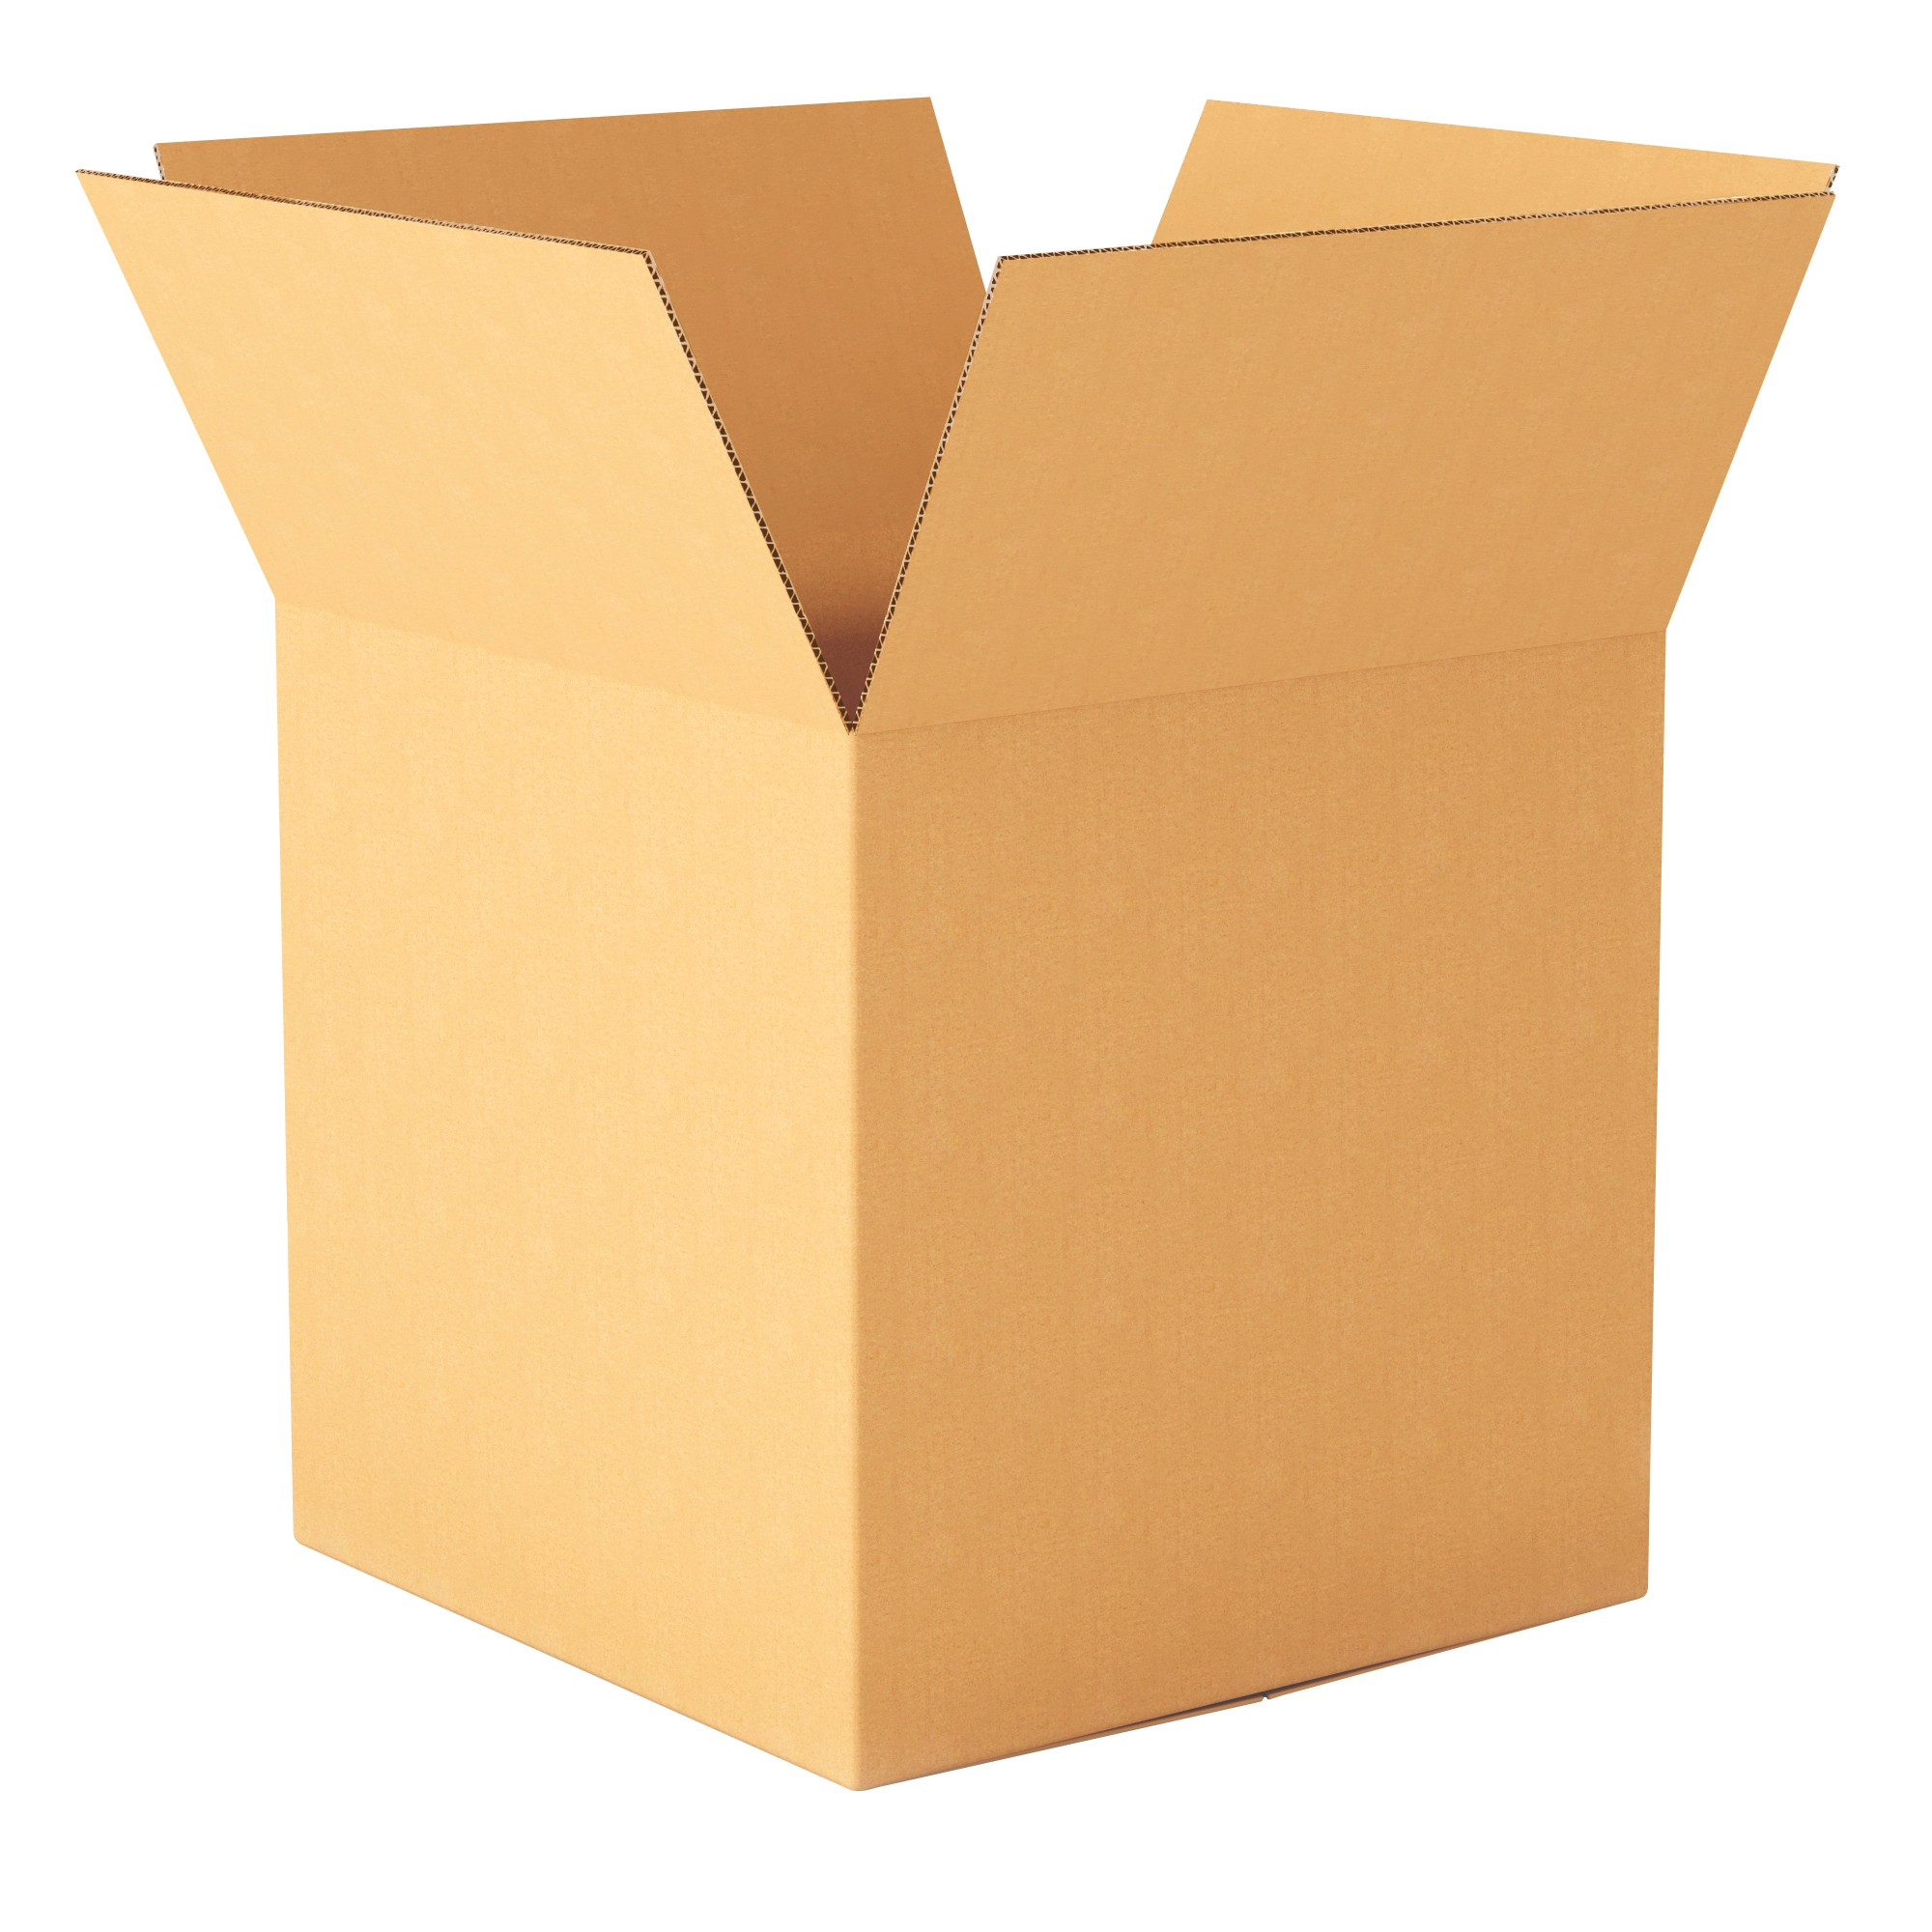 """TOTALPACK® 5 x 5 x 5"""" Single Wall Corrugated Boxes 25 Units"""